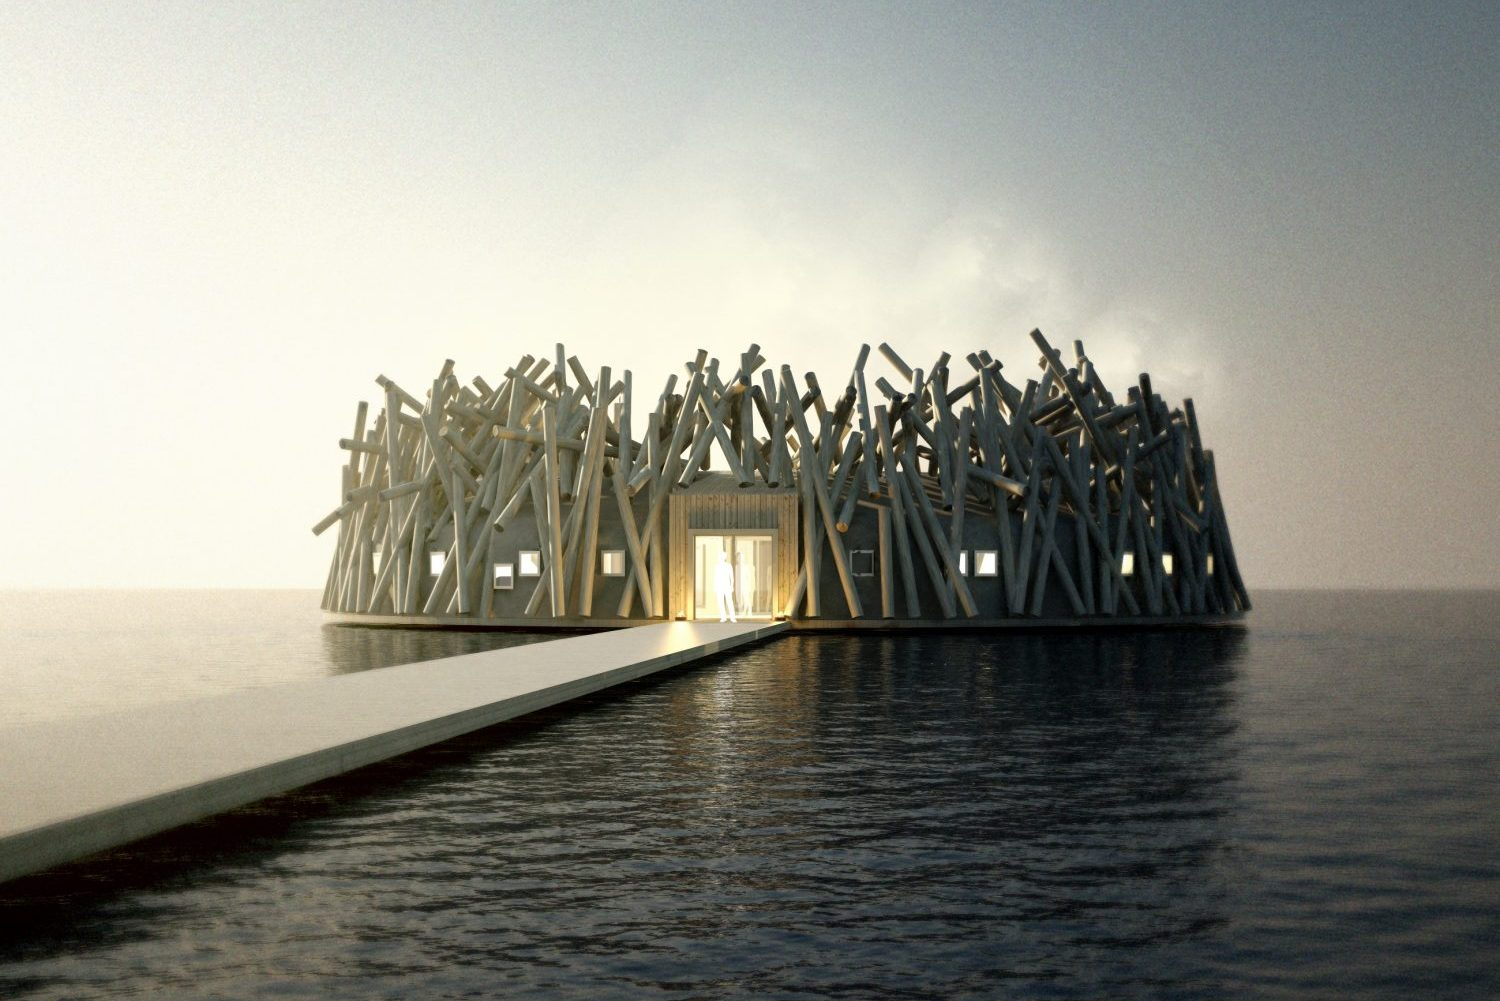 A floating hotel that freezes in ice come winter is set to open in Sweden